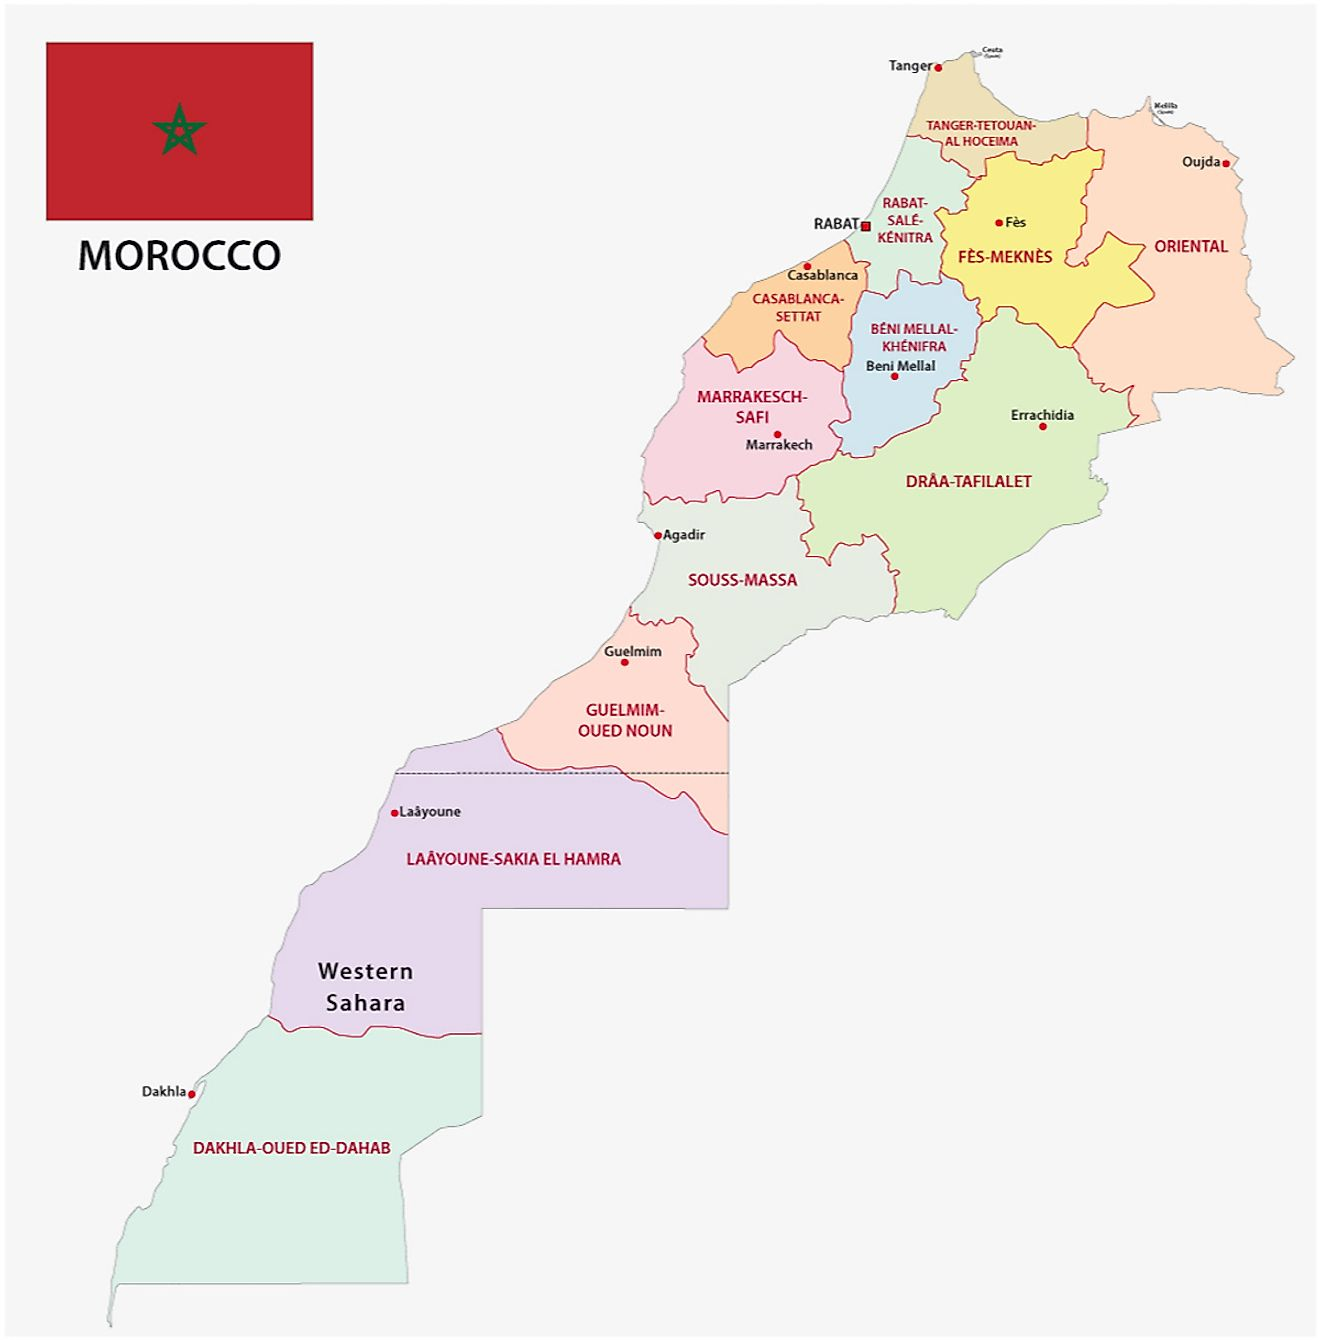 Political Map of Morocco displaying the administrative regions, their capitals including the national capital of Casablanca.